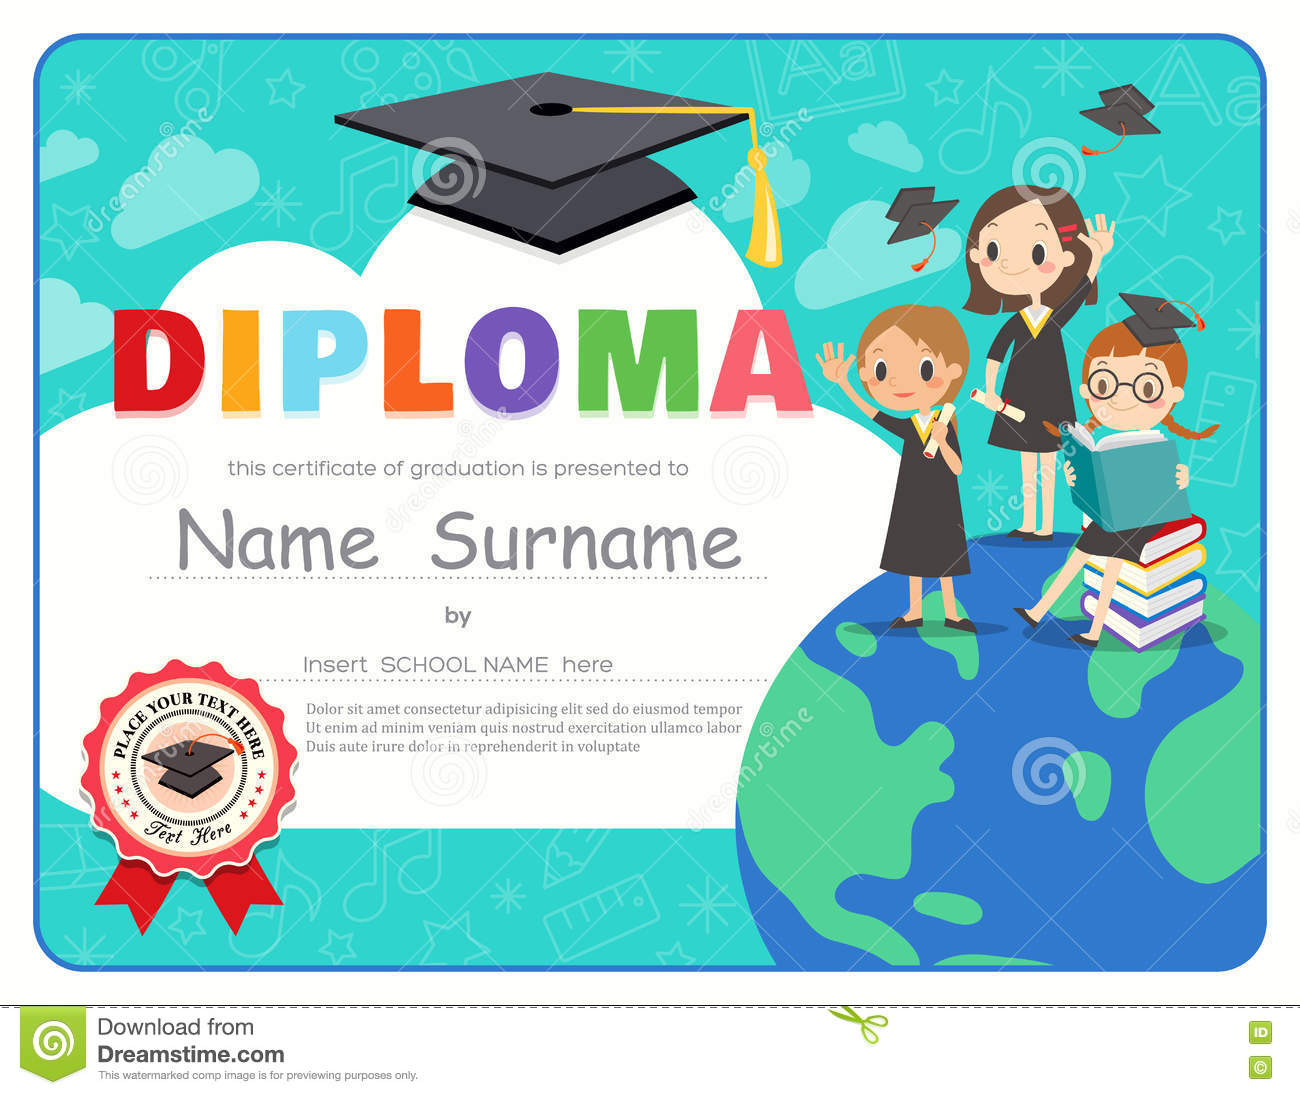 primary school kids graduation diploma certificate design template stock vector illustration. Black Bedroom Furniture Sets. Home Design Ideas